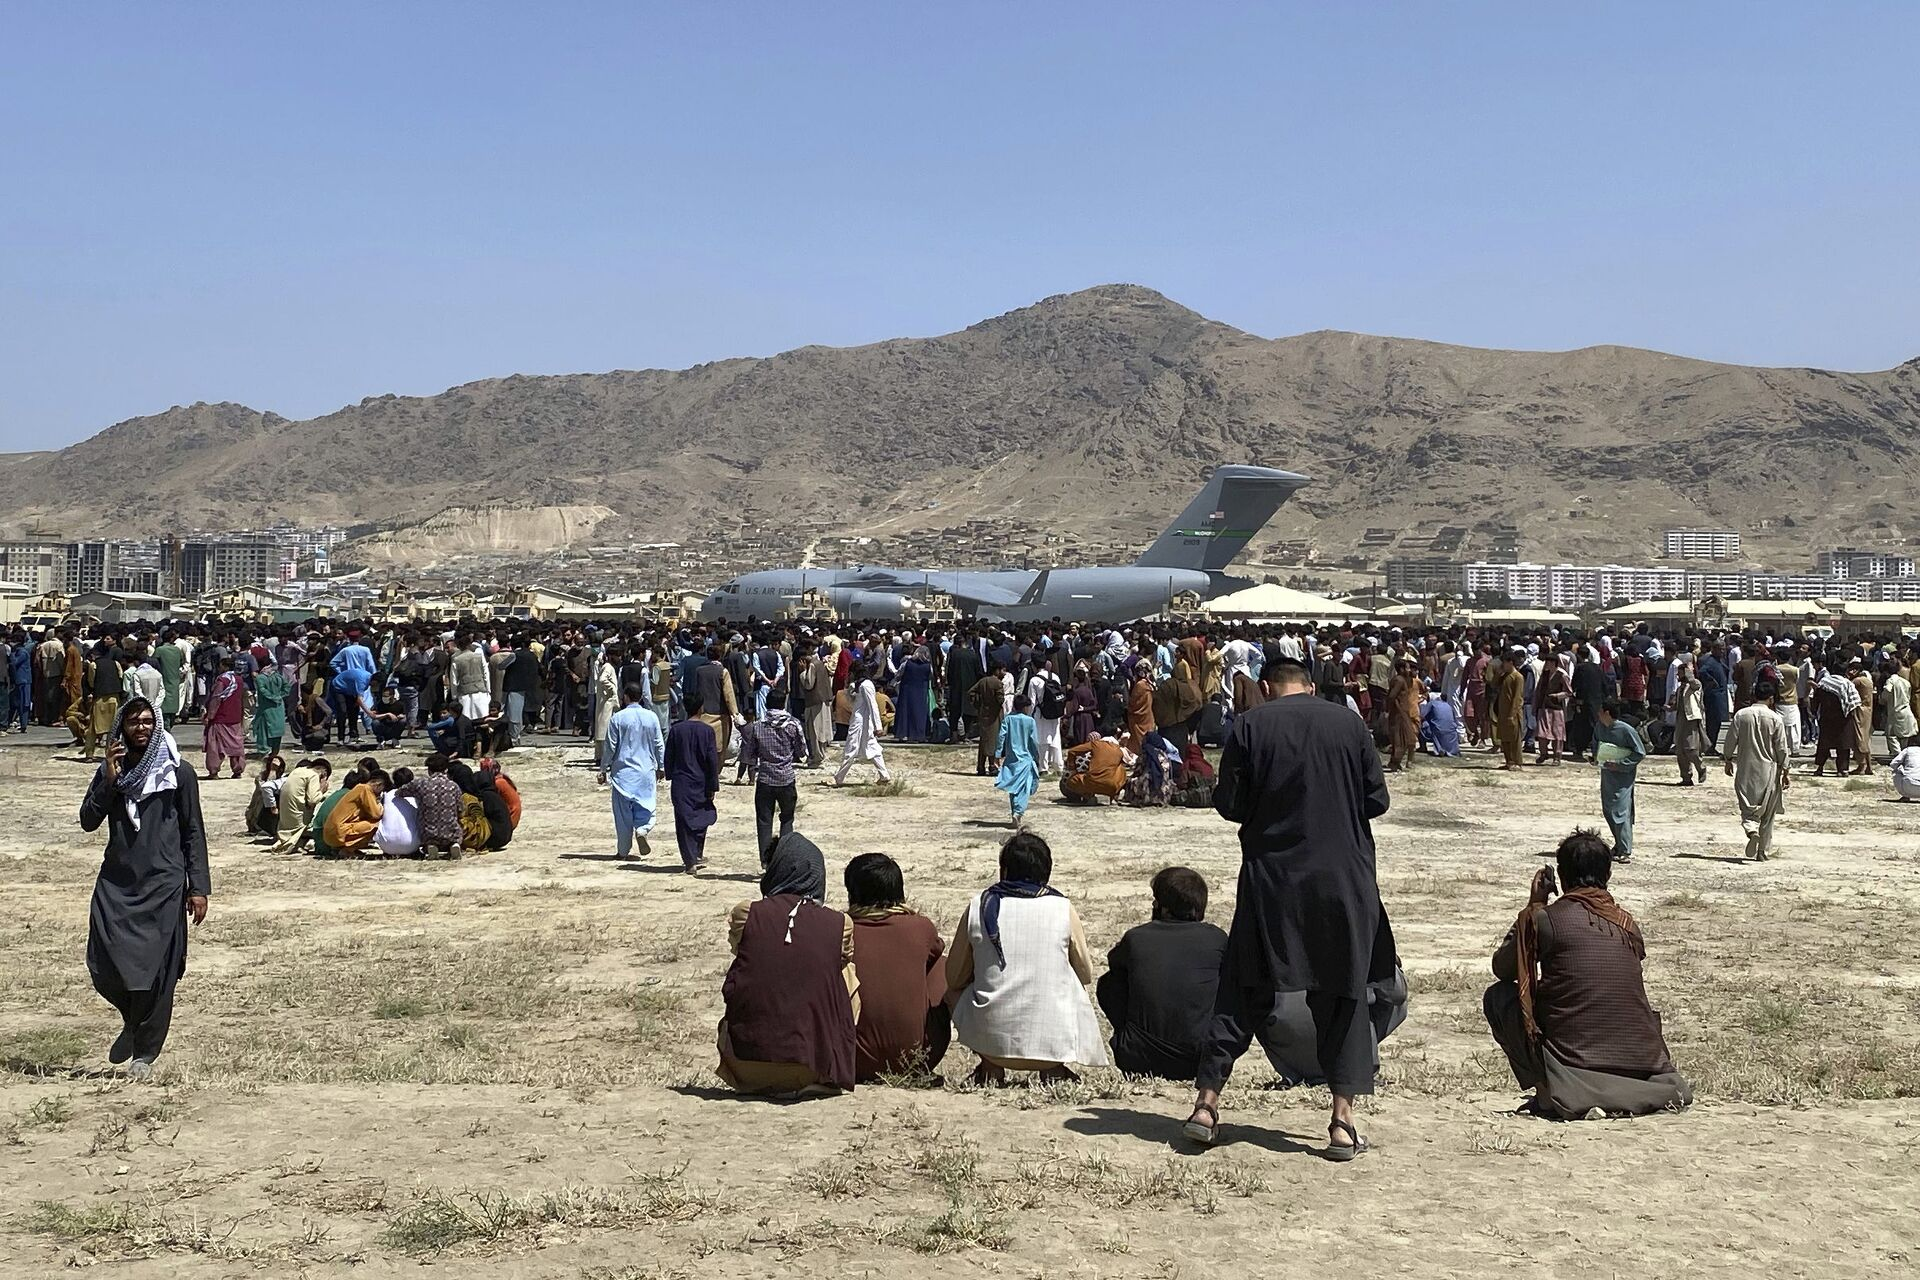 Hundreds of people gather near a U.S. Air Force C-17 transport plane at a perimeter at the international airport in Kabul, Afghanistan, Monday, Aug. 16, 2021. - Sputnik International, 1920, 07.09.2021